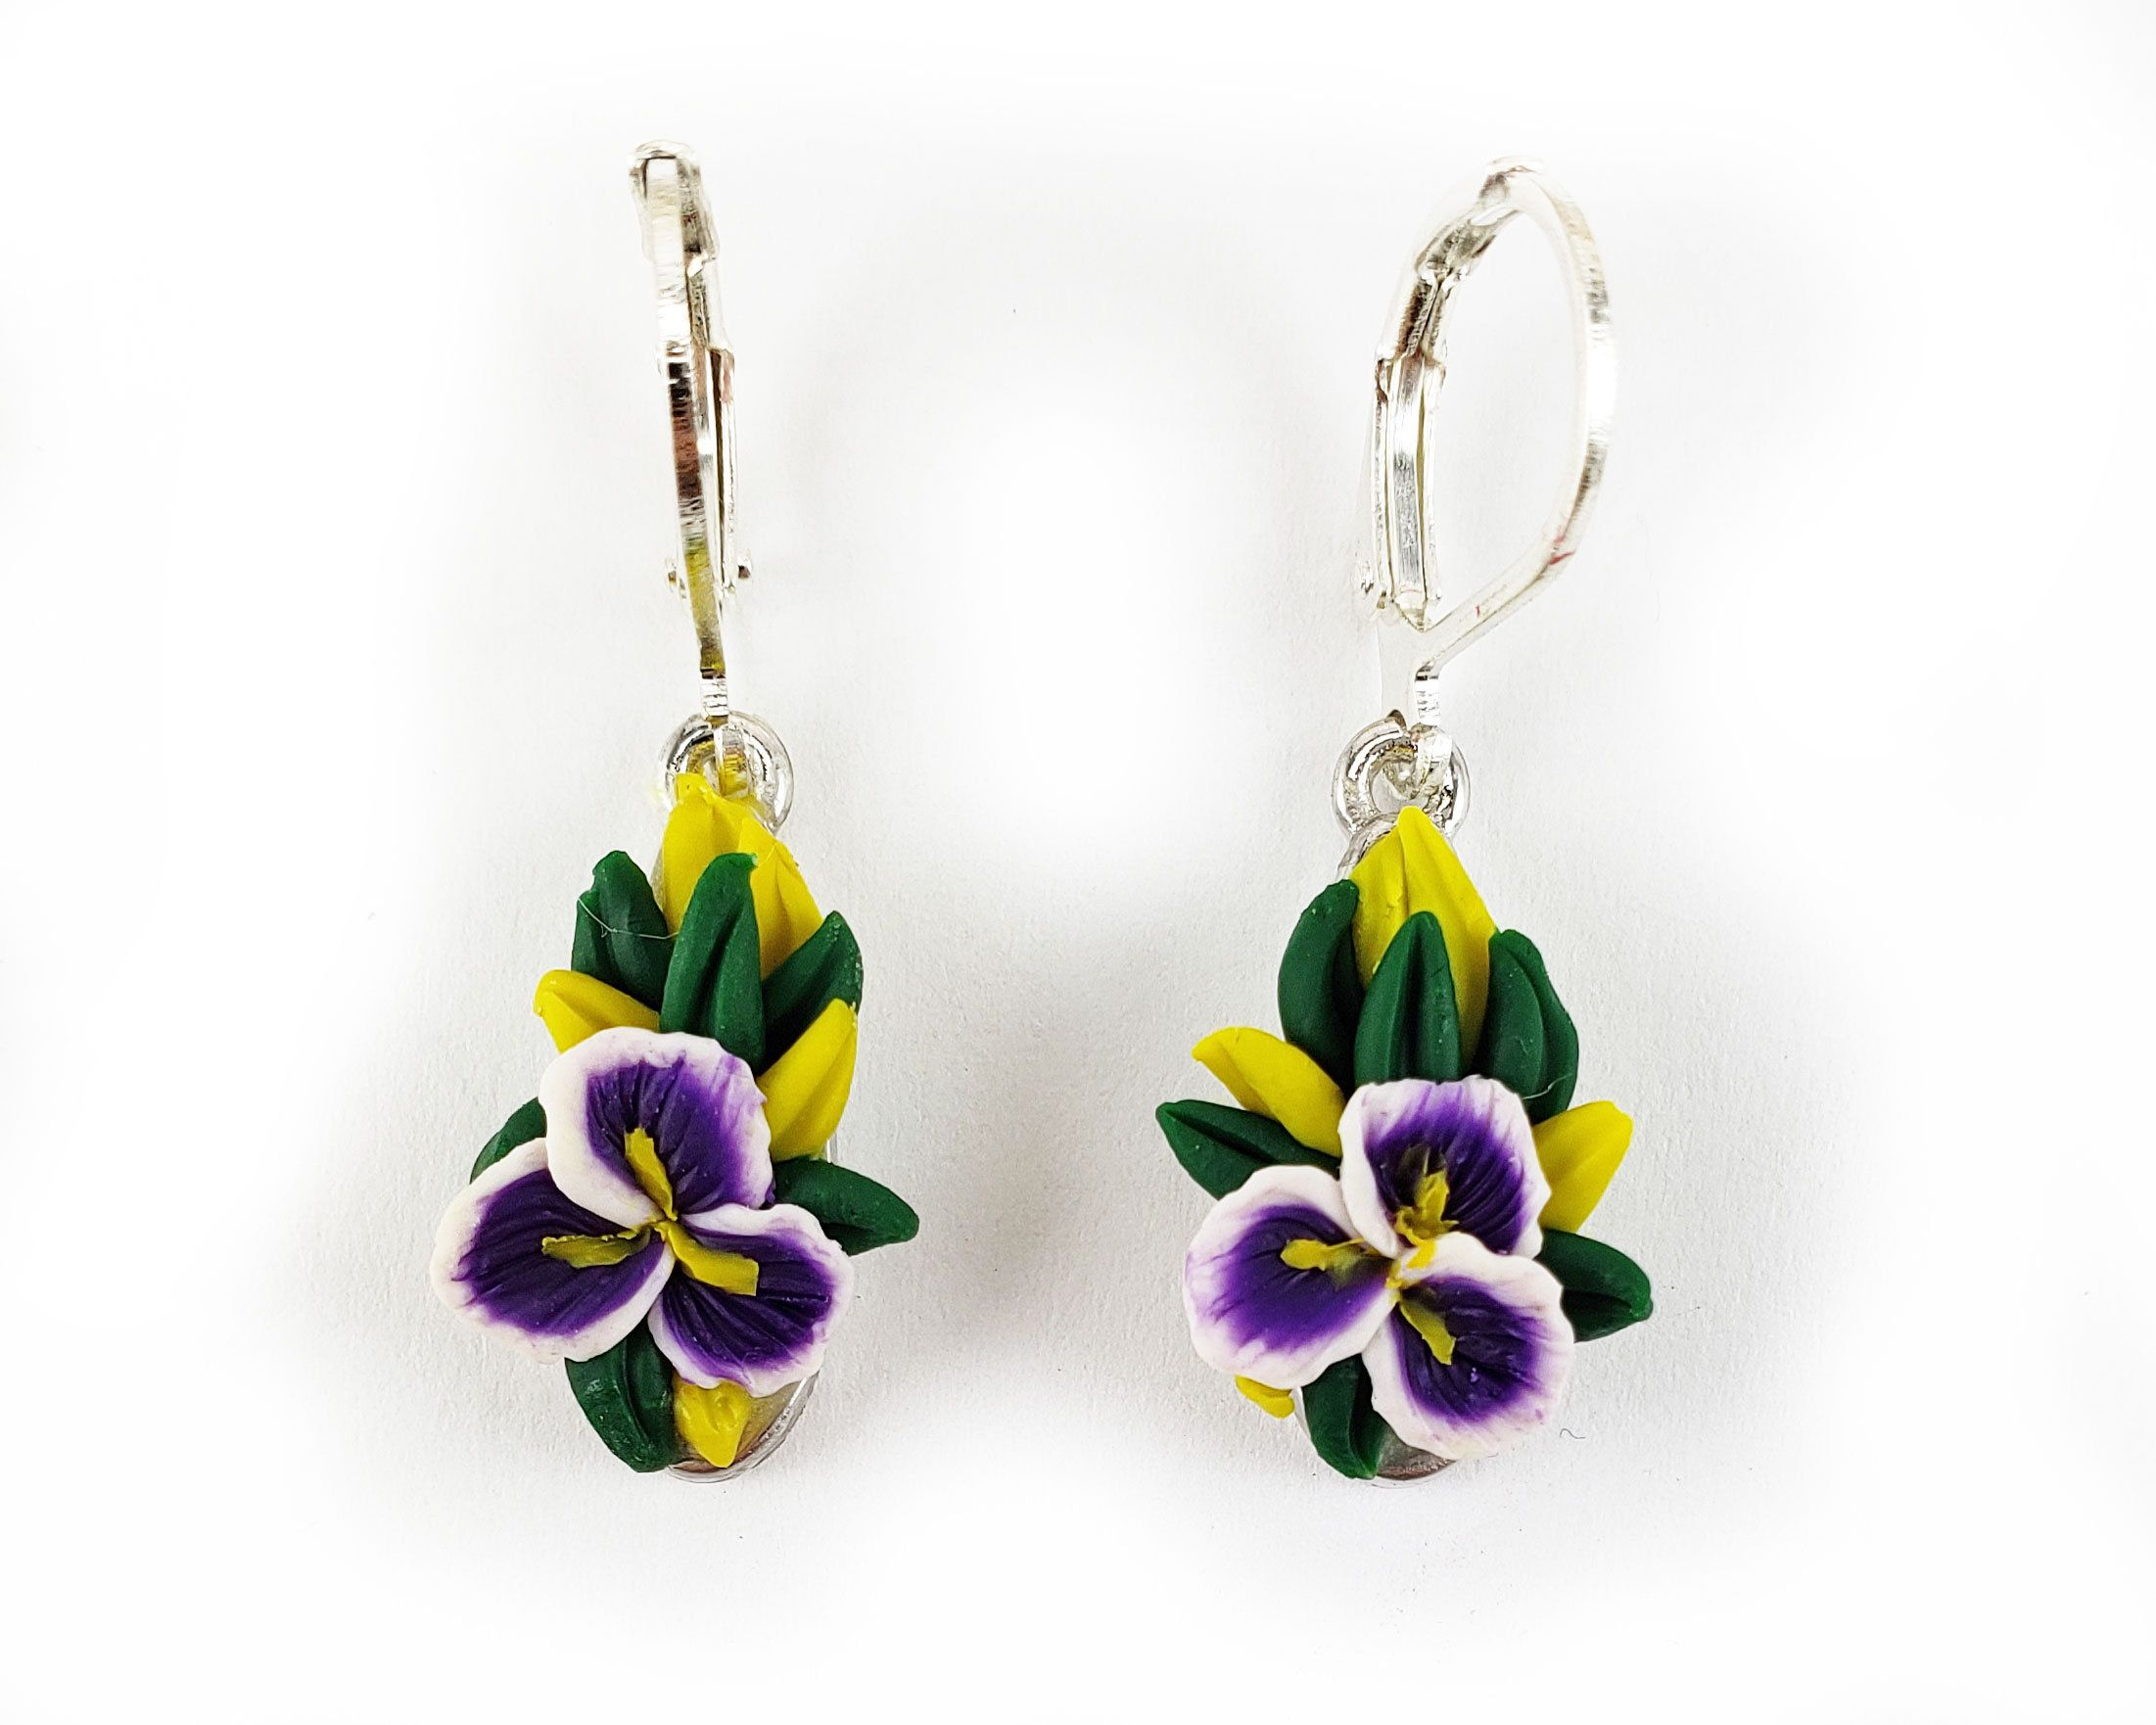 Purple Iris Flower Earrings Iris Flower Jewelry Iris Dangle Earrings Iris Flower Gifts Purple Iris Silver Earrin In 2020 Iris Jewelry Purple Iris Flower Jewellery